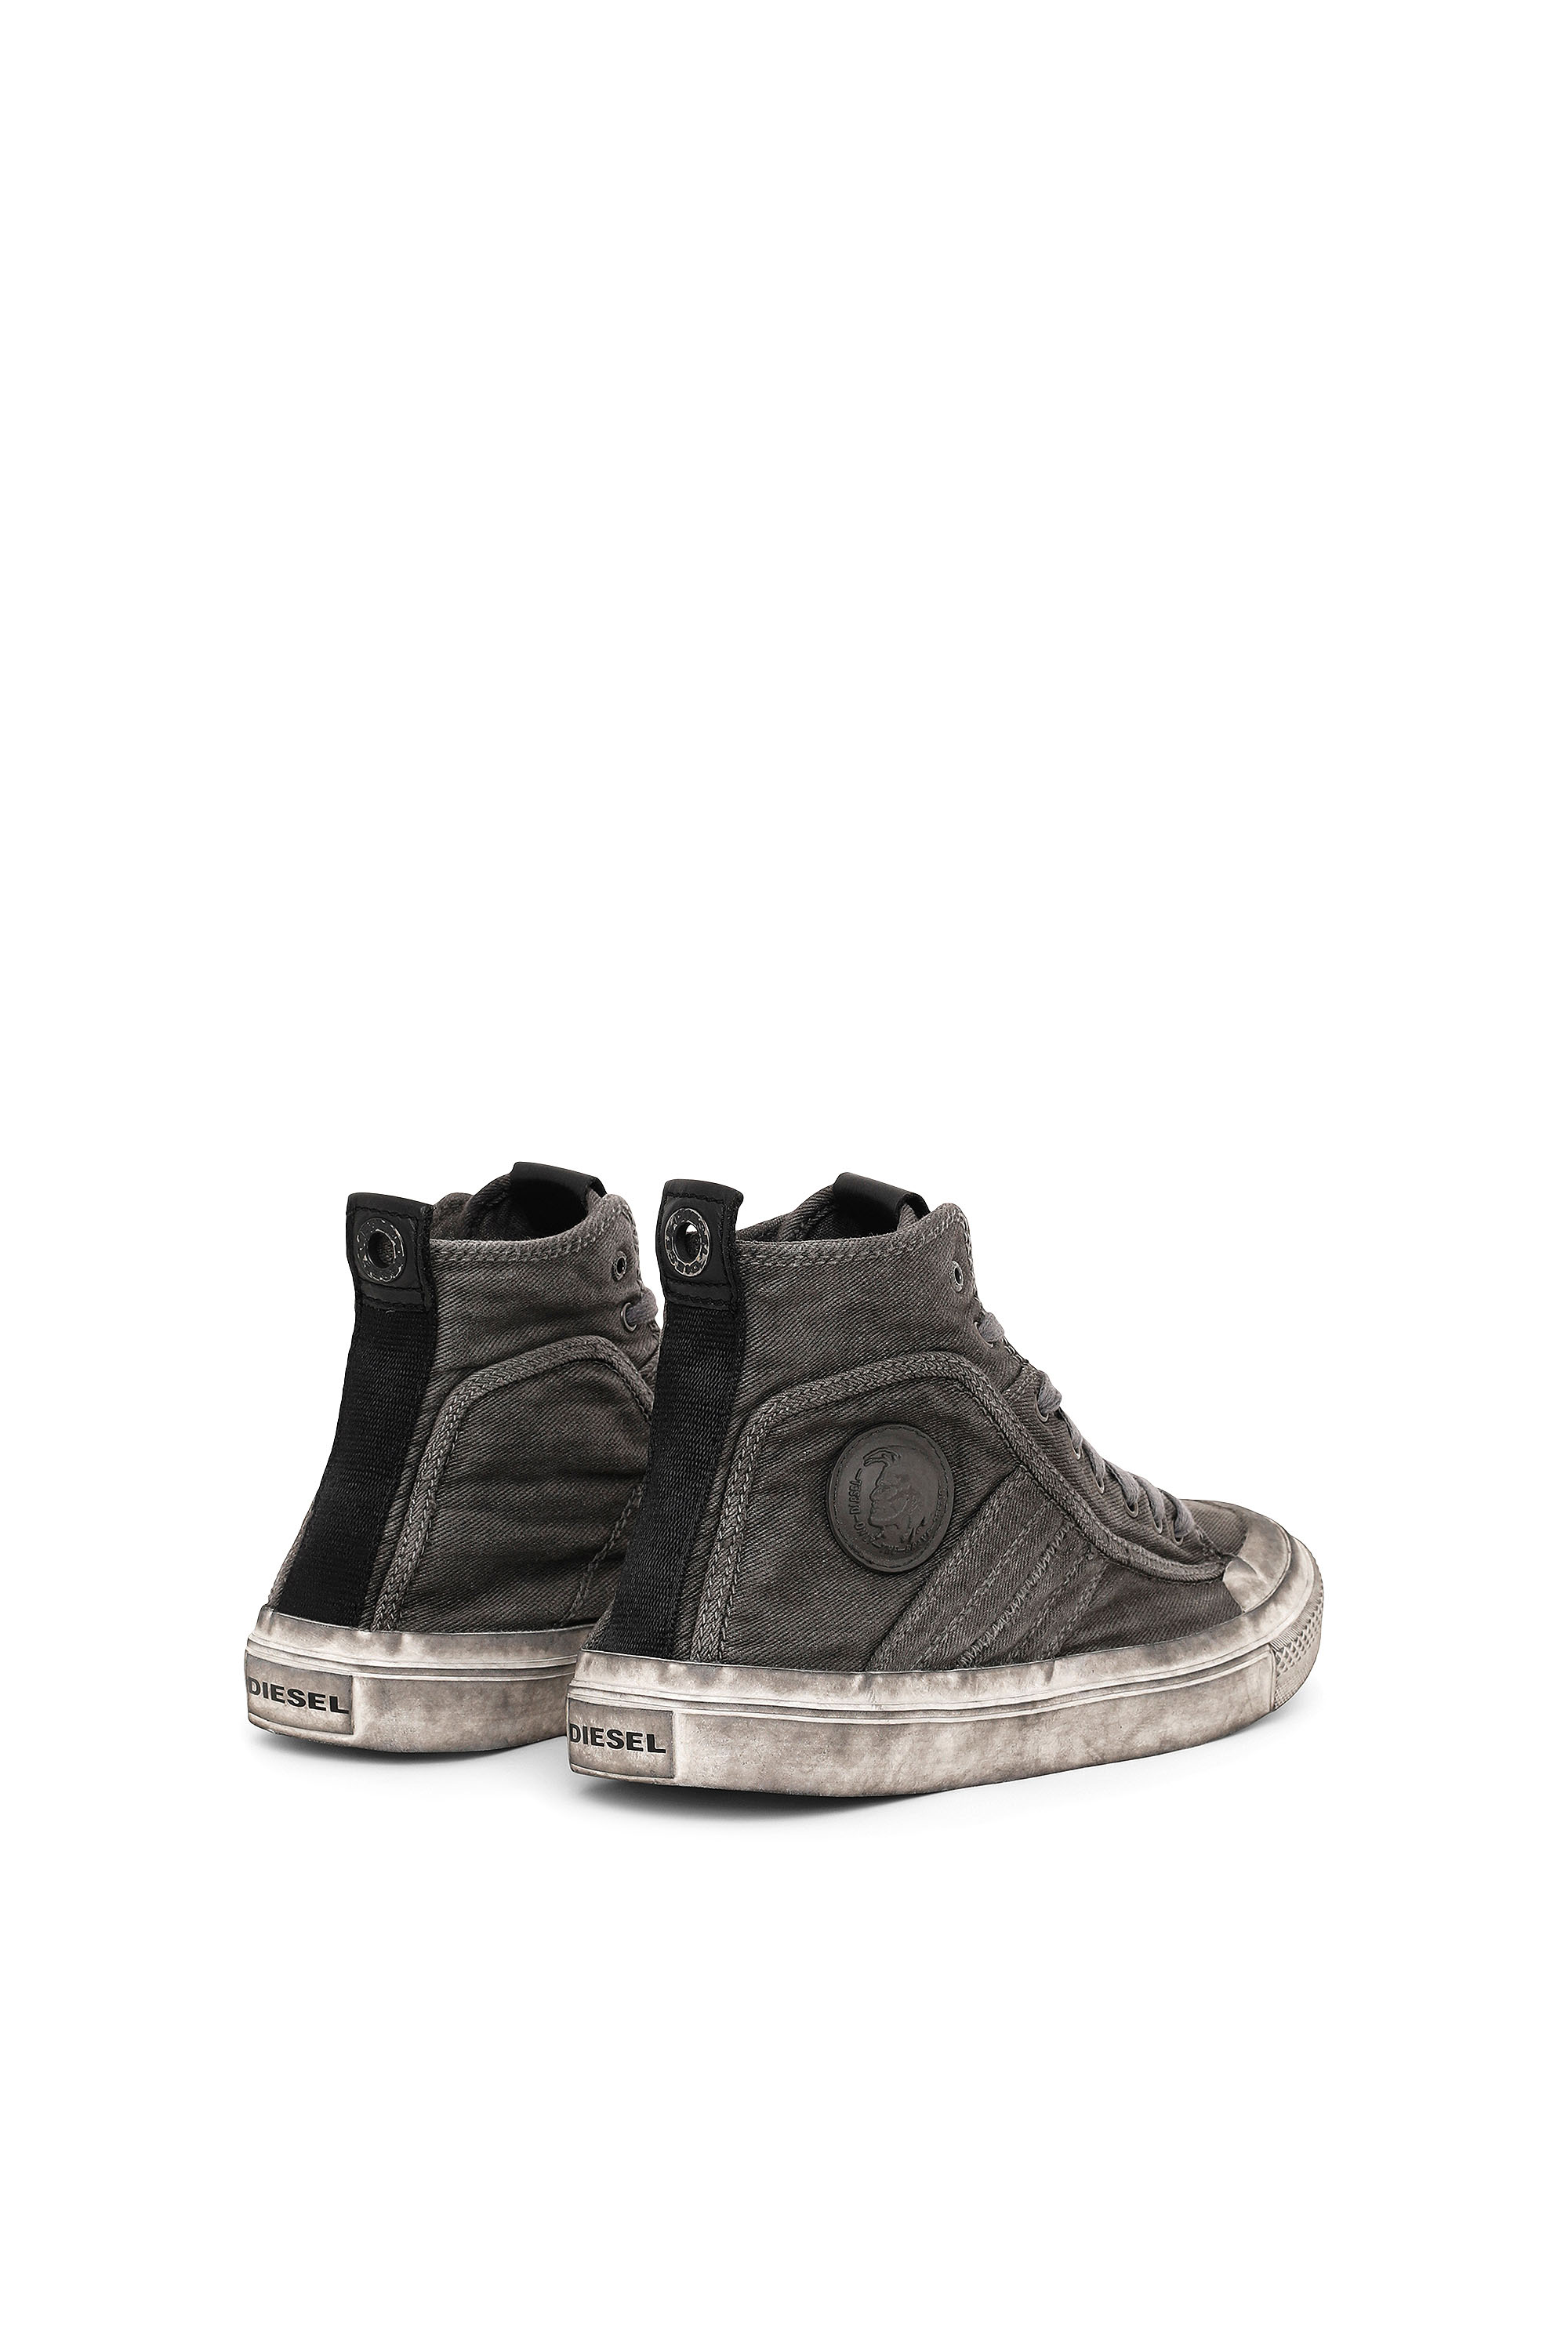 Diesel - S-ASTICO MID LACE,  - Sneakers - Image 3